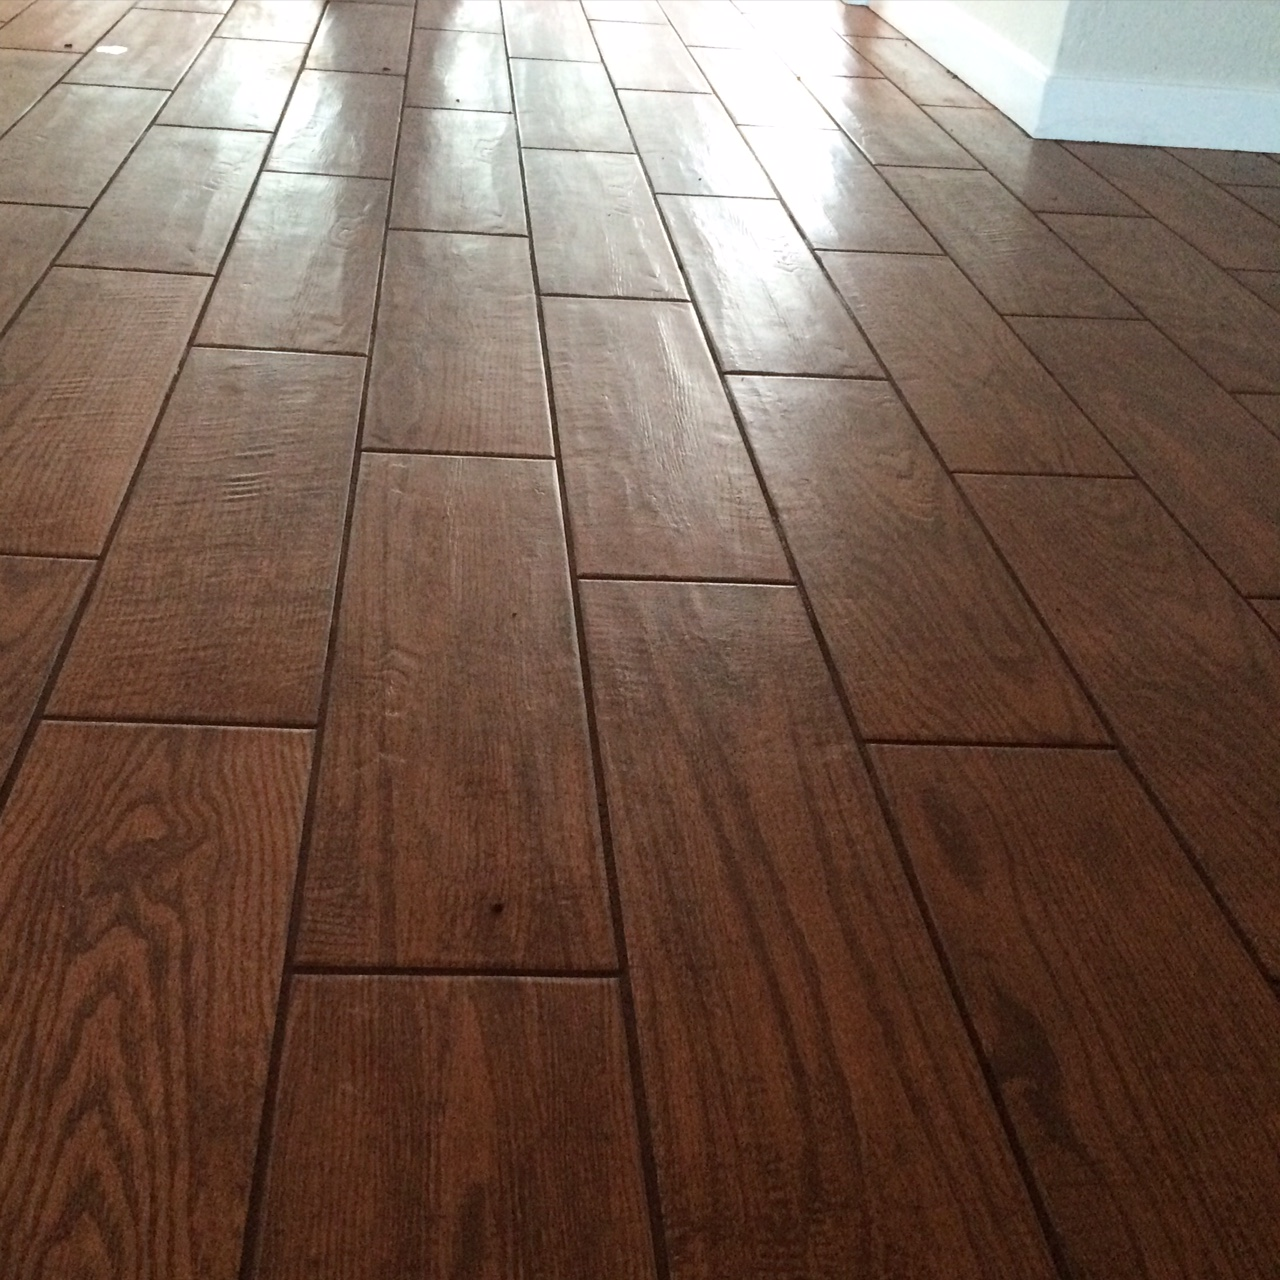 Hardwood floor looking tile